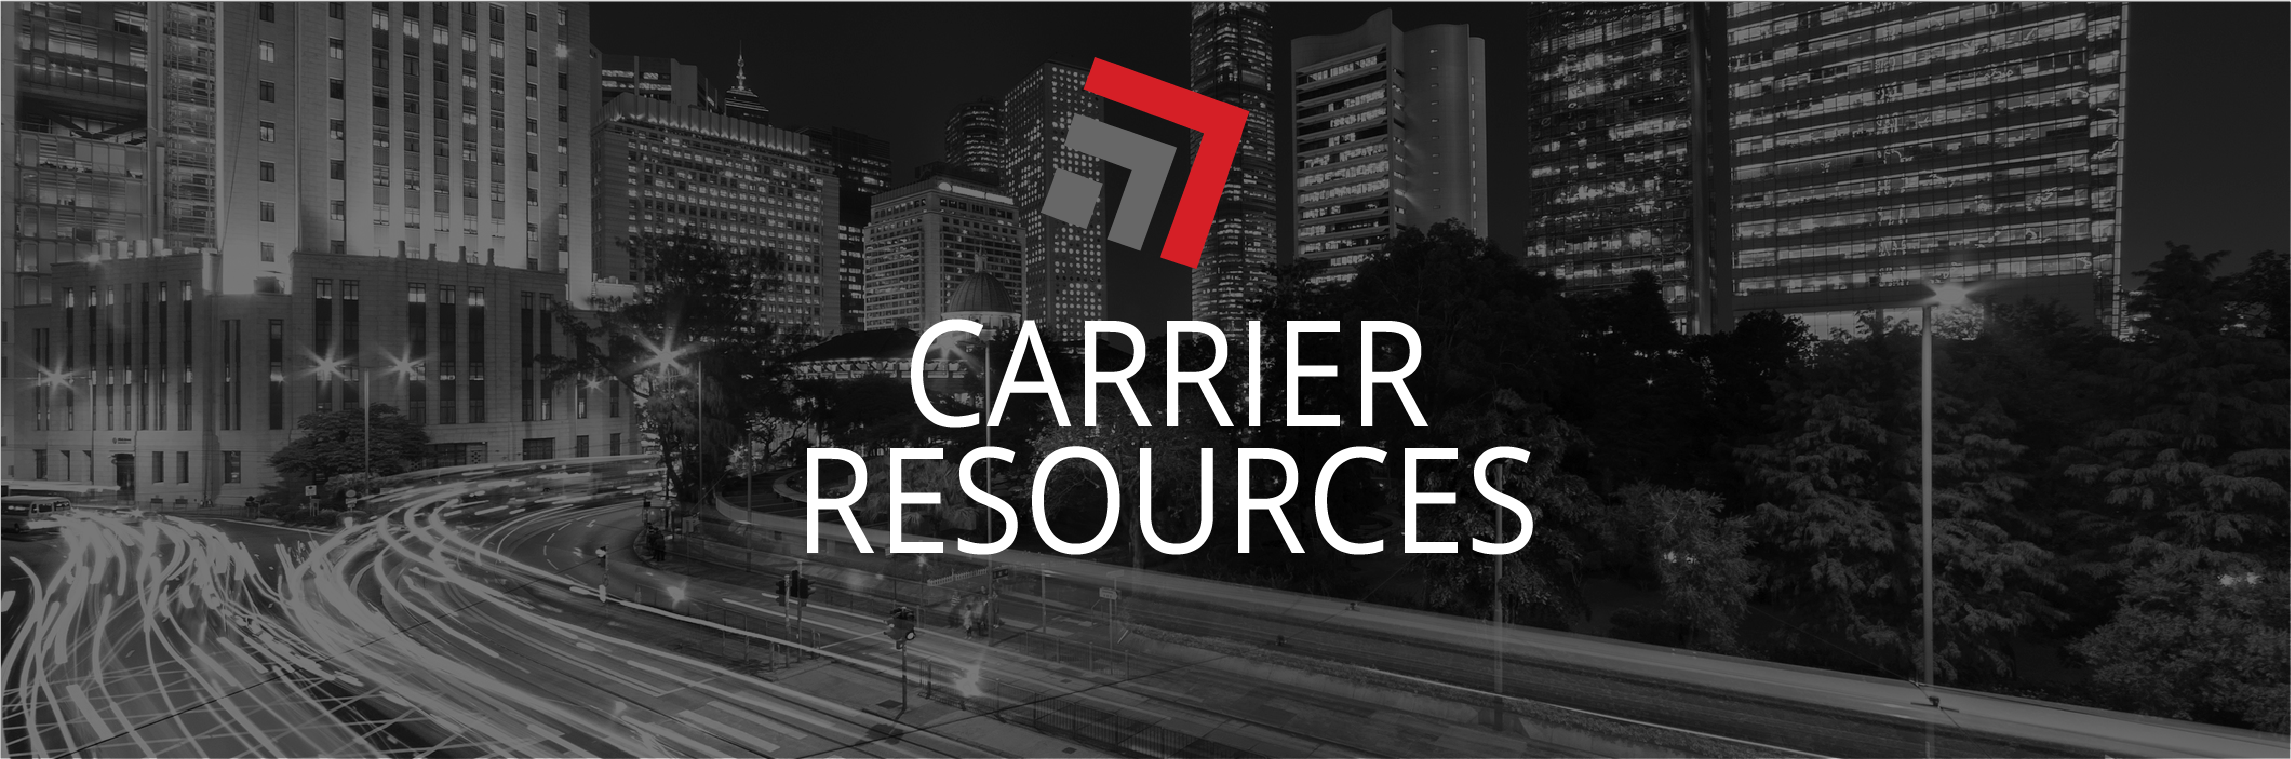 Carrier Resources